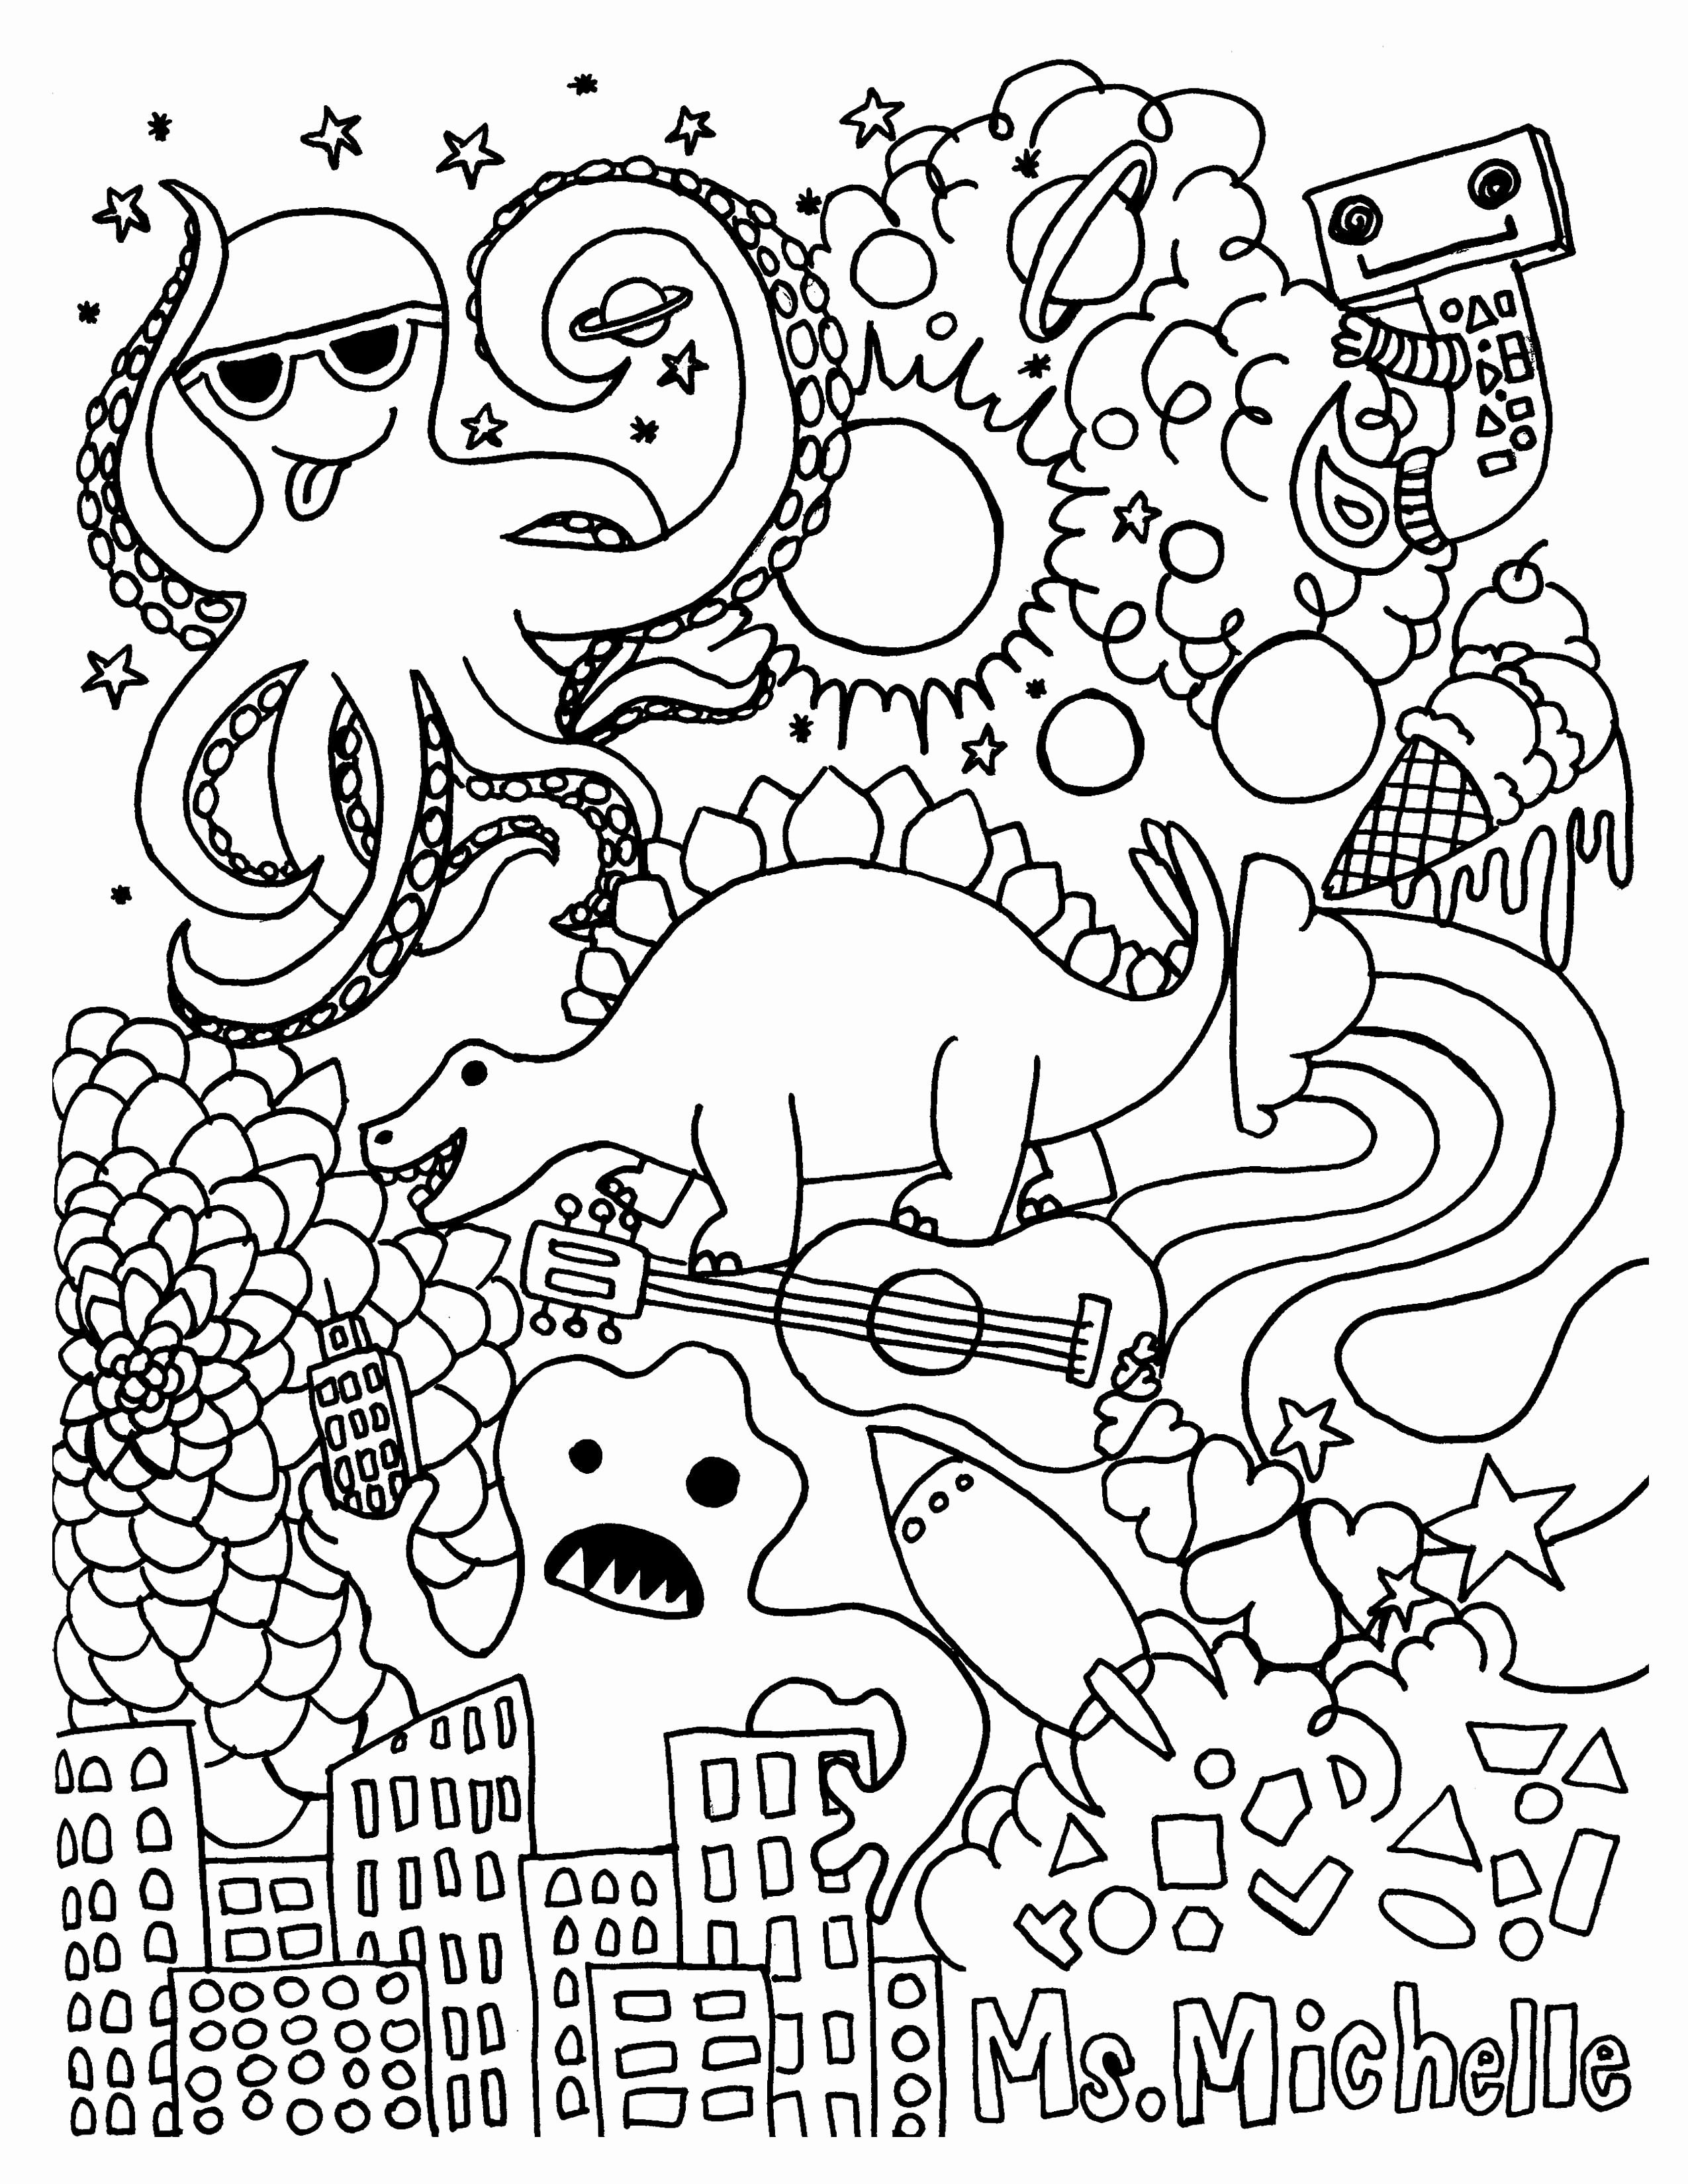 preschool halloween coloring pages Download-Free Coloring Pages for Halloween Unique Best Coloring Page Adult Od Types Halloween Coloring Pages for Kids 7-s